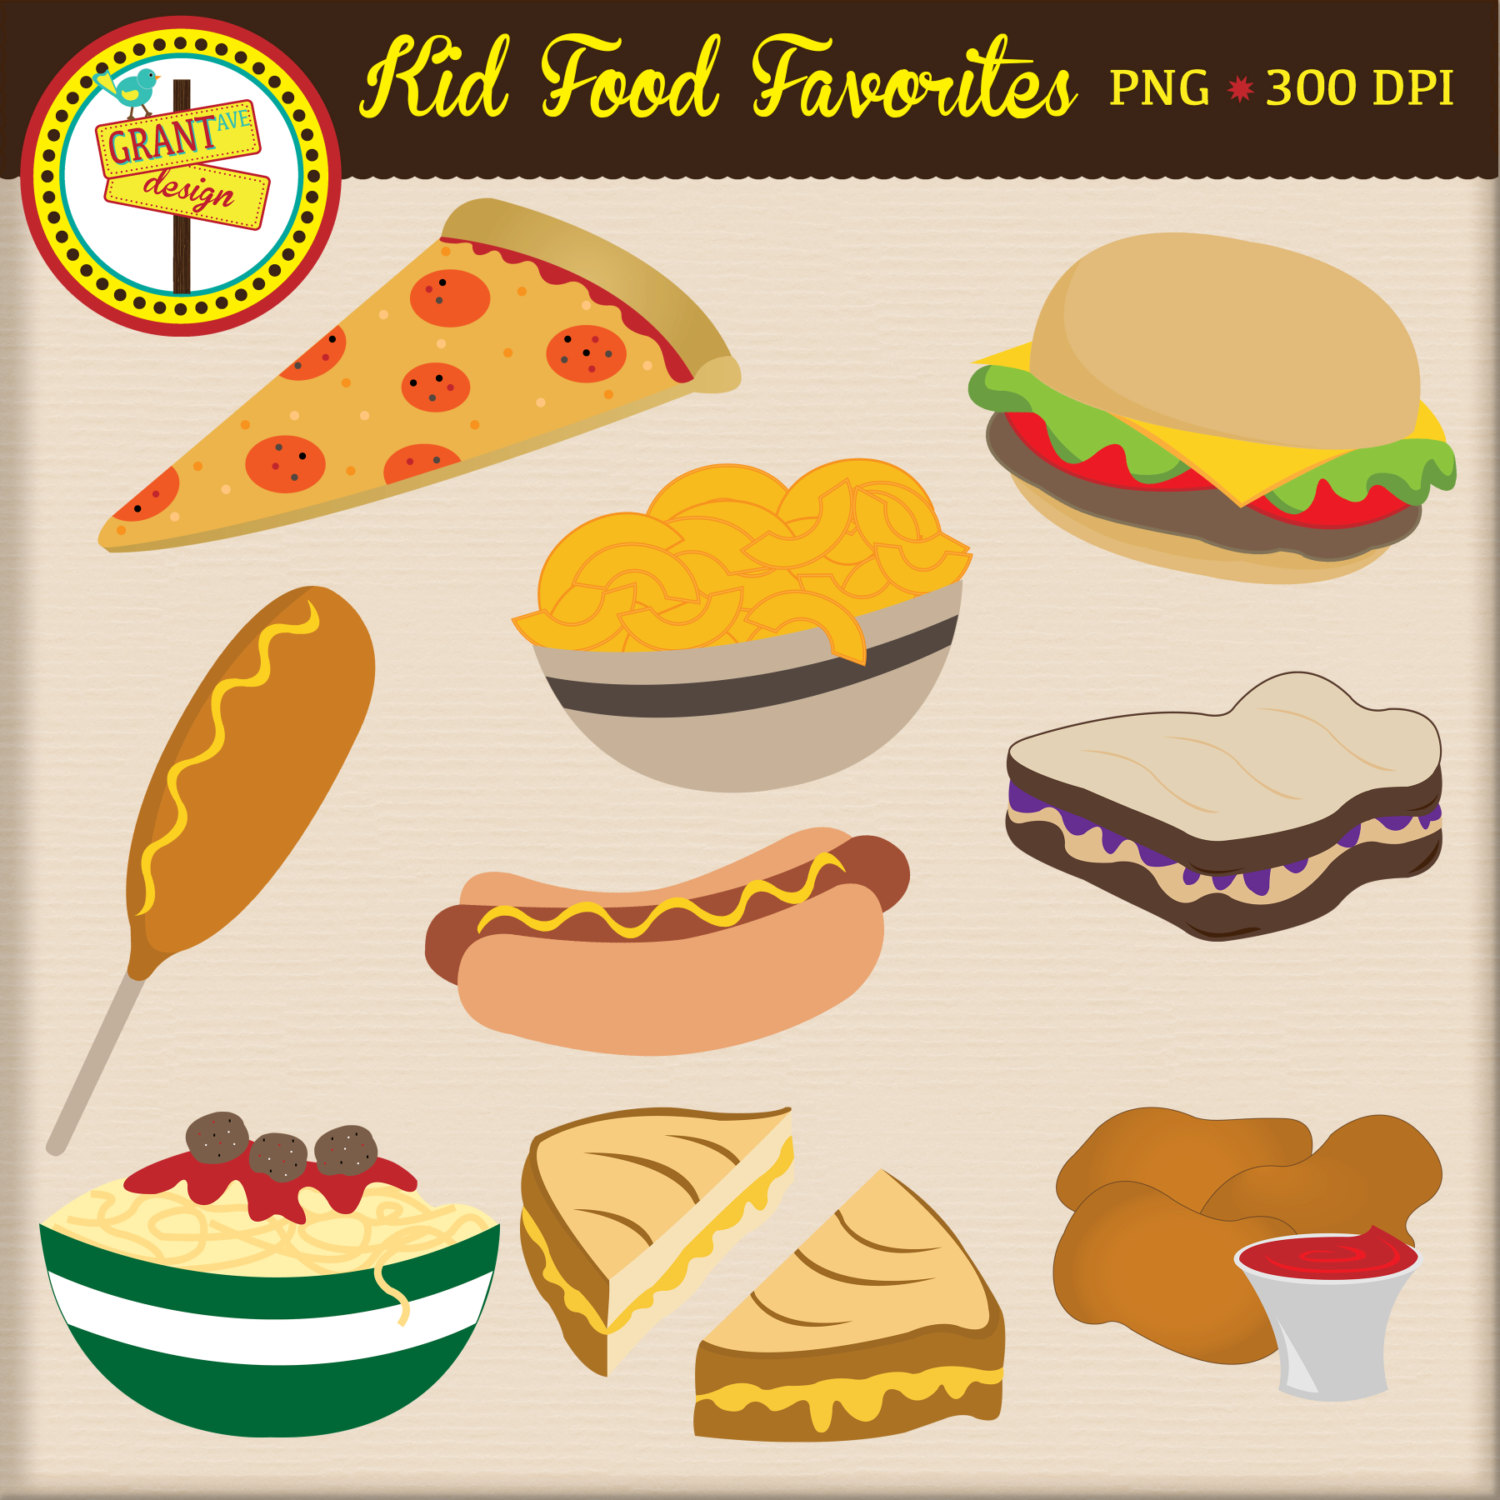 Sandwich clipart favorite food Food clipart BBCpersian7 collections for